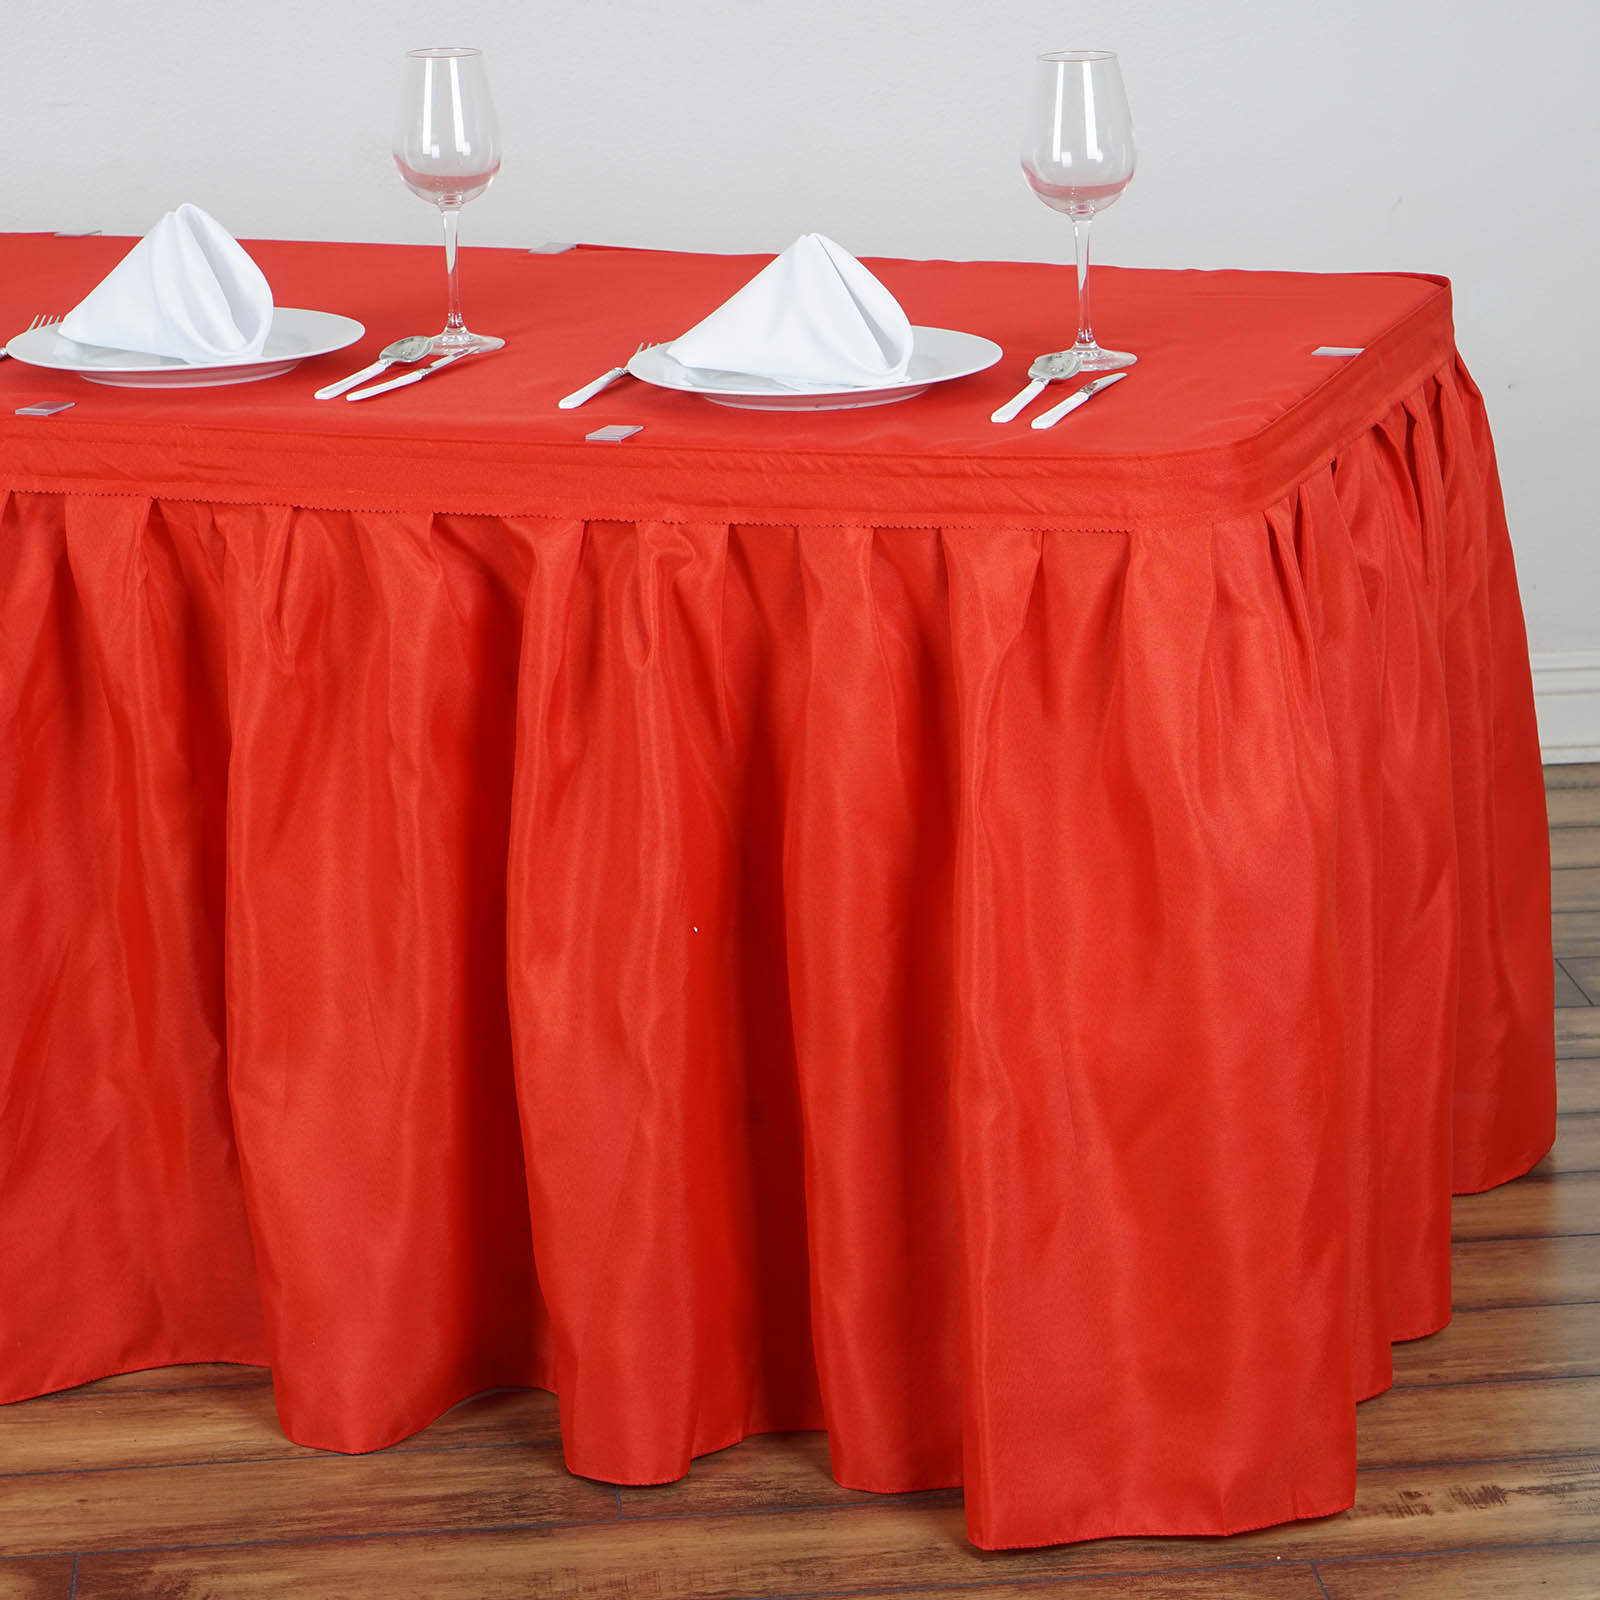 Definition Of Round Table.Round Table Skirting Definition Lixnet Ag